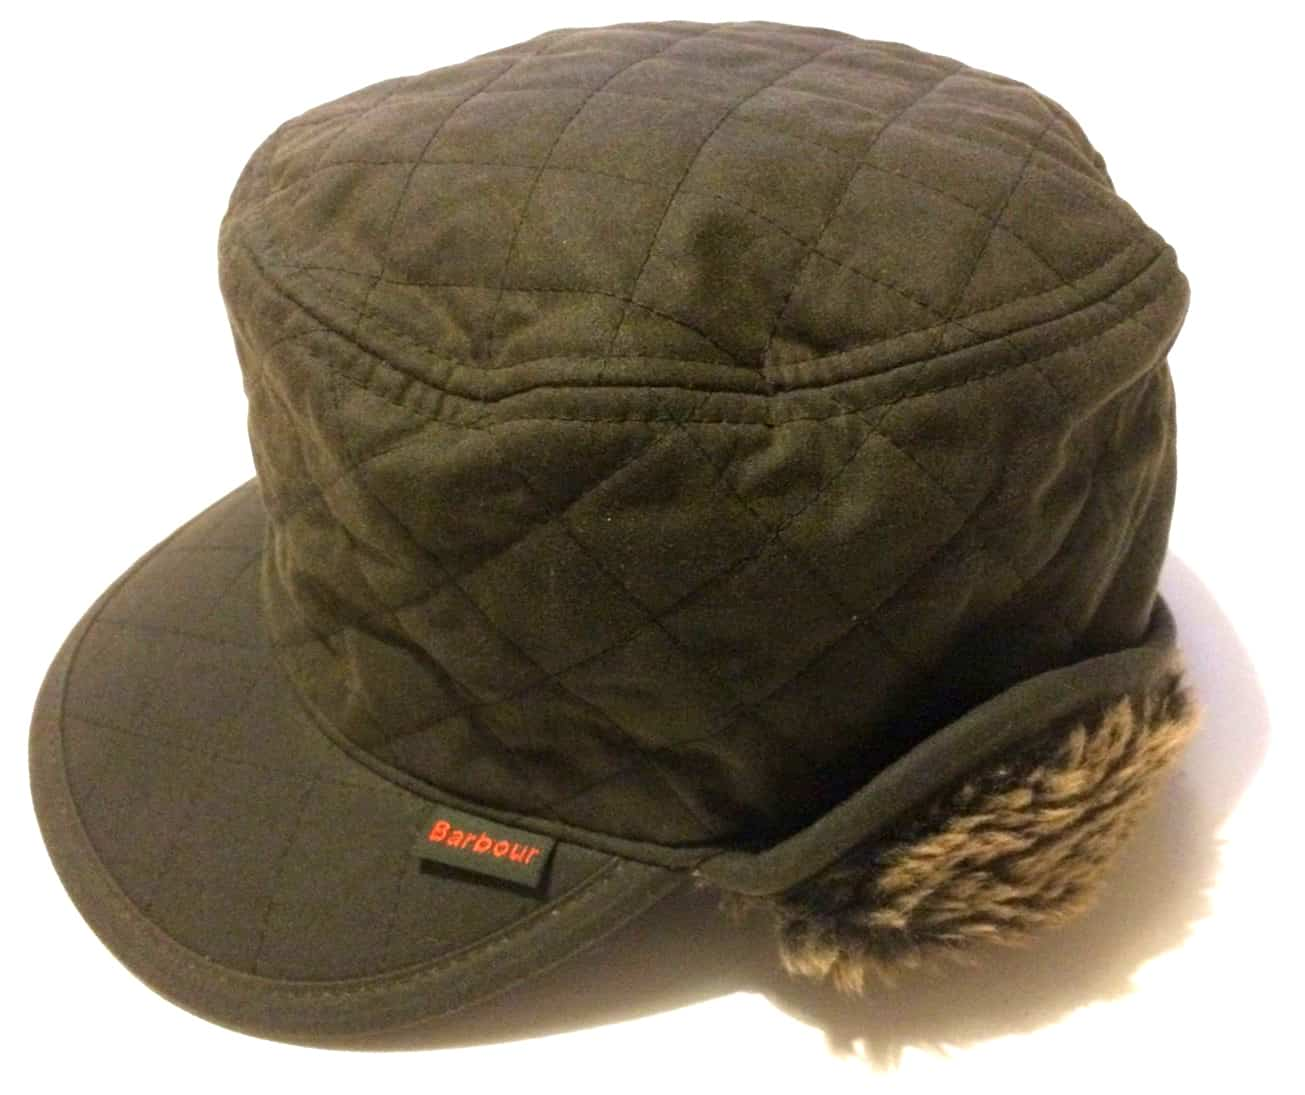 Barbour Stanhope Trapper Waxed Hat Review